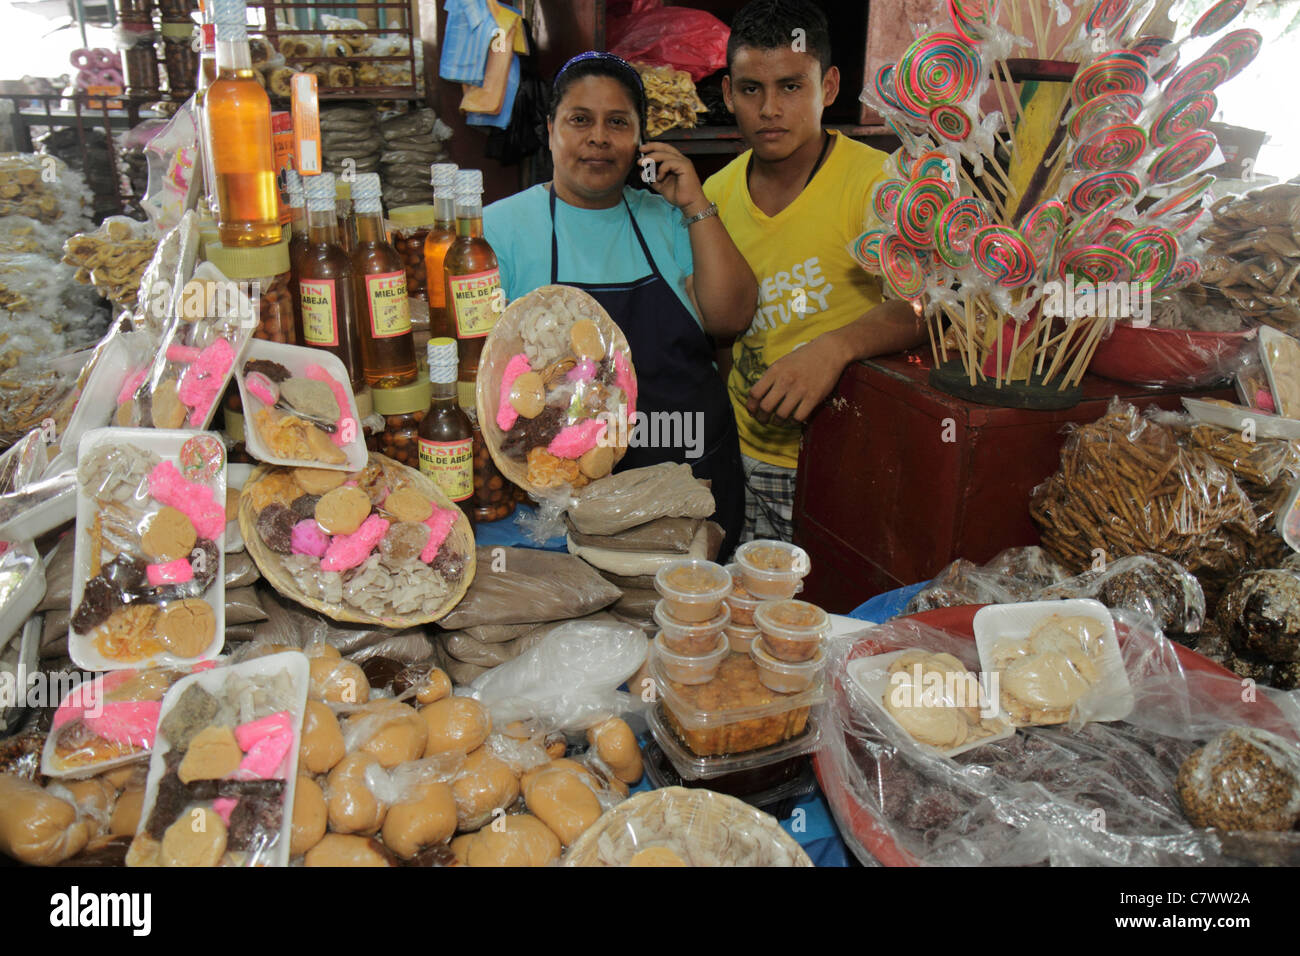 Managua Nicaragua Mercado Roberto Huembes market shopping marketplace baked goods family business owner vendor stall - Stock Image